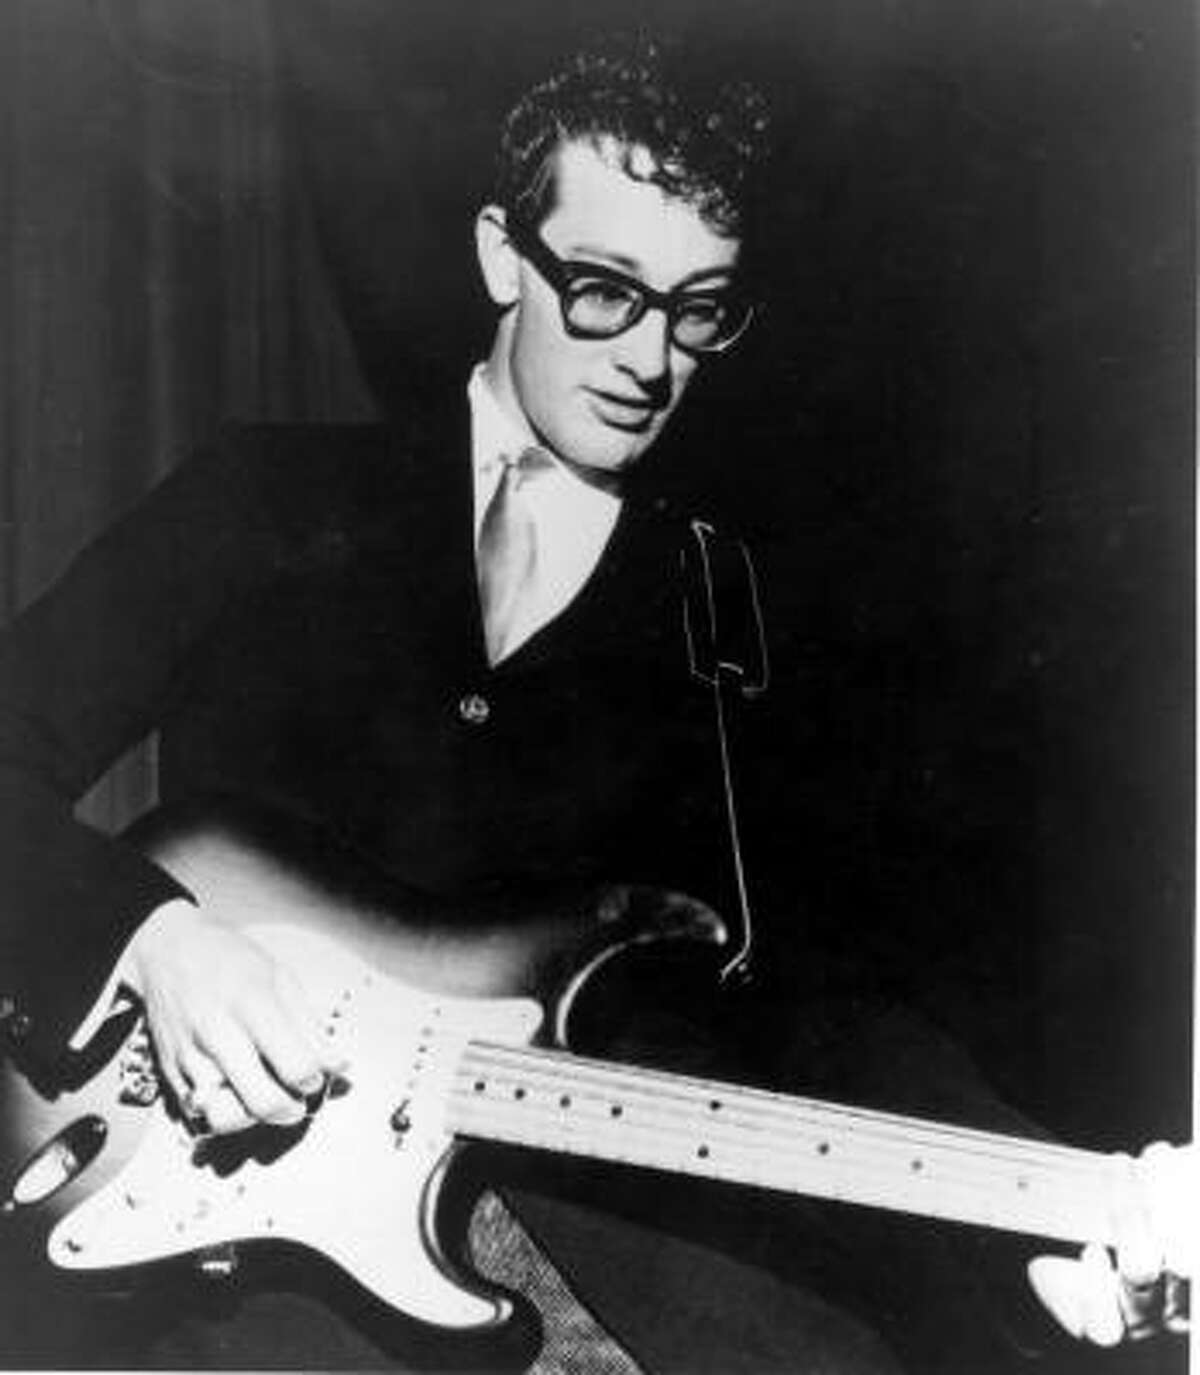 With hectic tours to often remote places, the music world has been hit hard by air tragedies. Here are some other notable musicians who lost their lives in plane crashes.Feb. 3, 1959: Rock stars Buddy Holly (pictured), J.P.